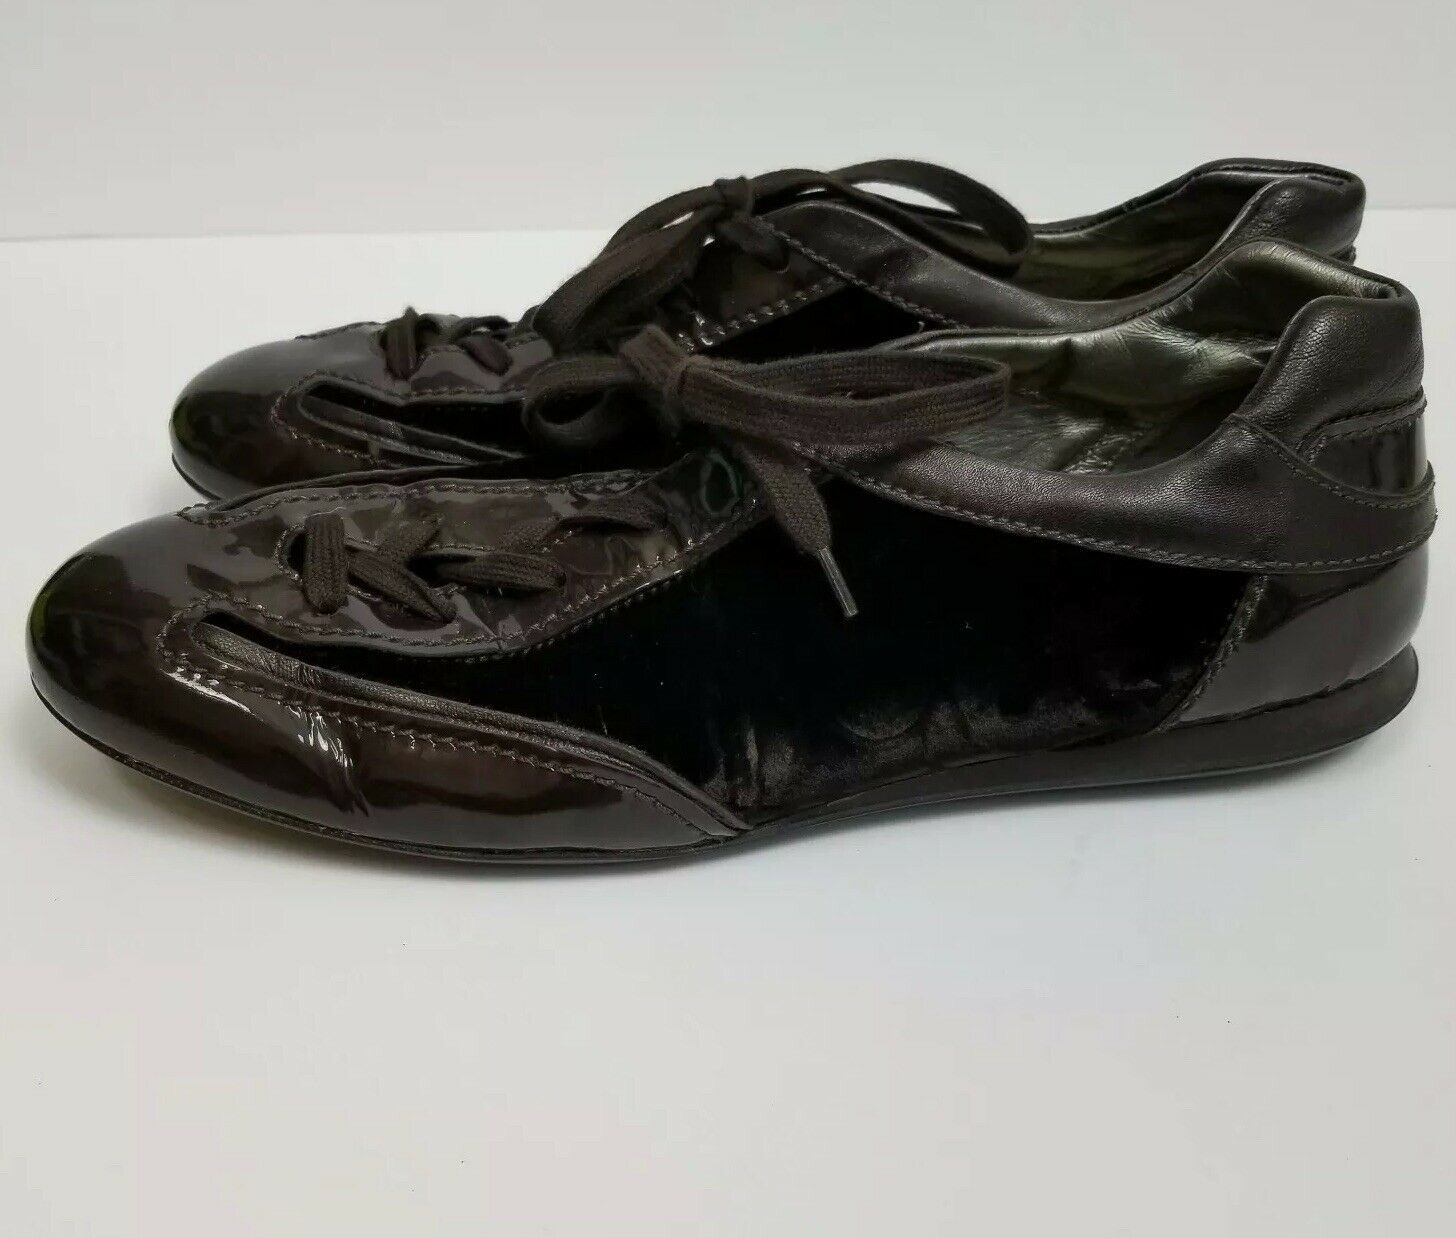 Hogan Olympia Olympia Olympia Brown Velvet Patent Sneakers Trainer shoes size 40 540885